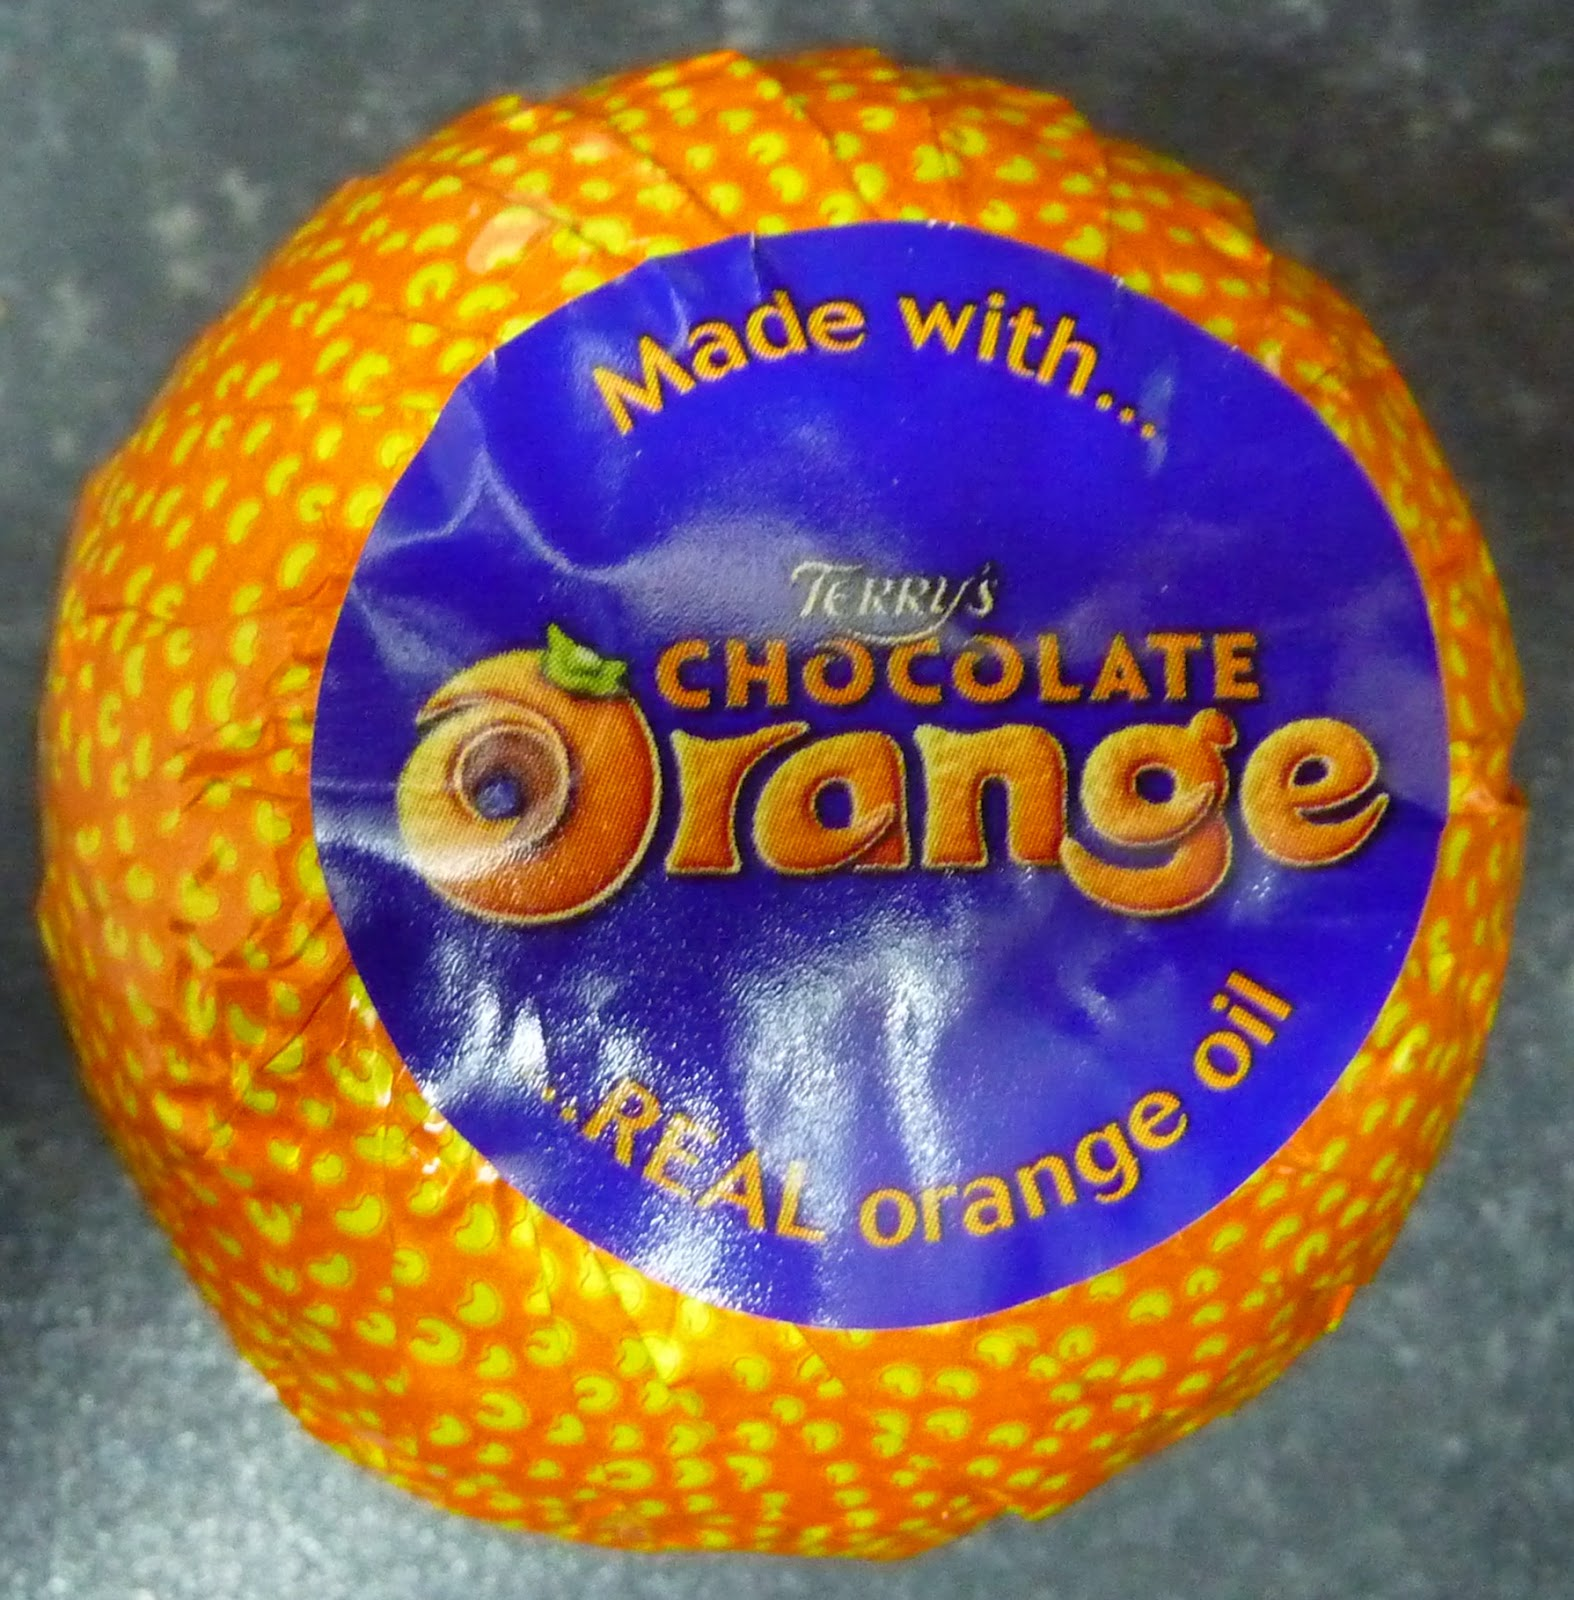 Something to look forward to: Terry's Chocolate Orange: White